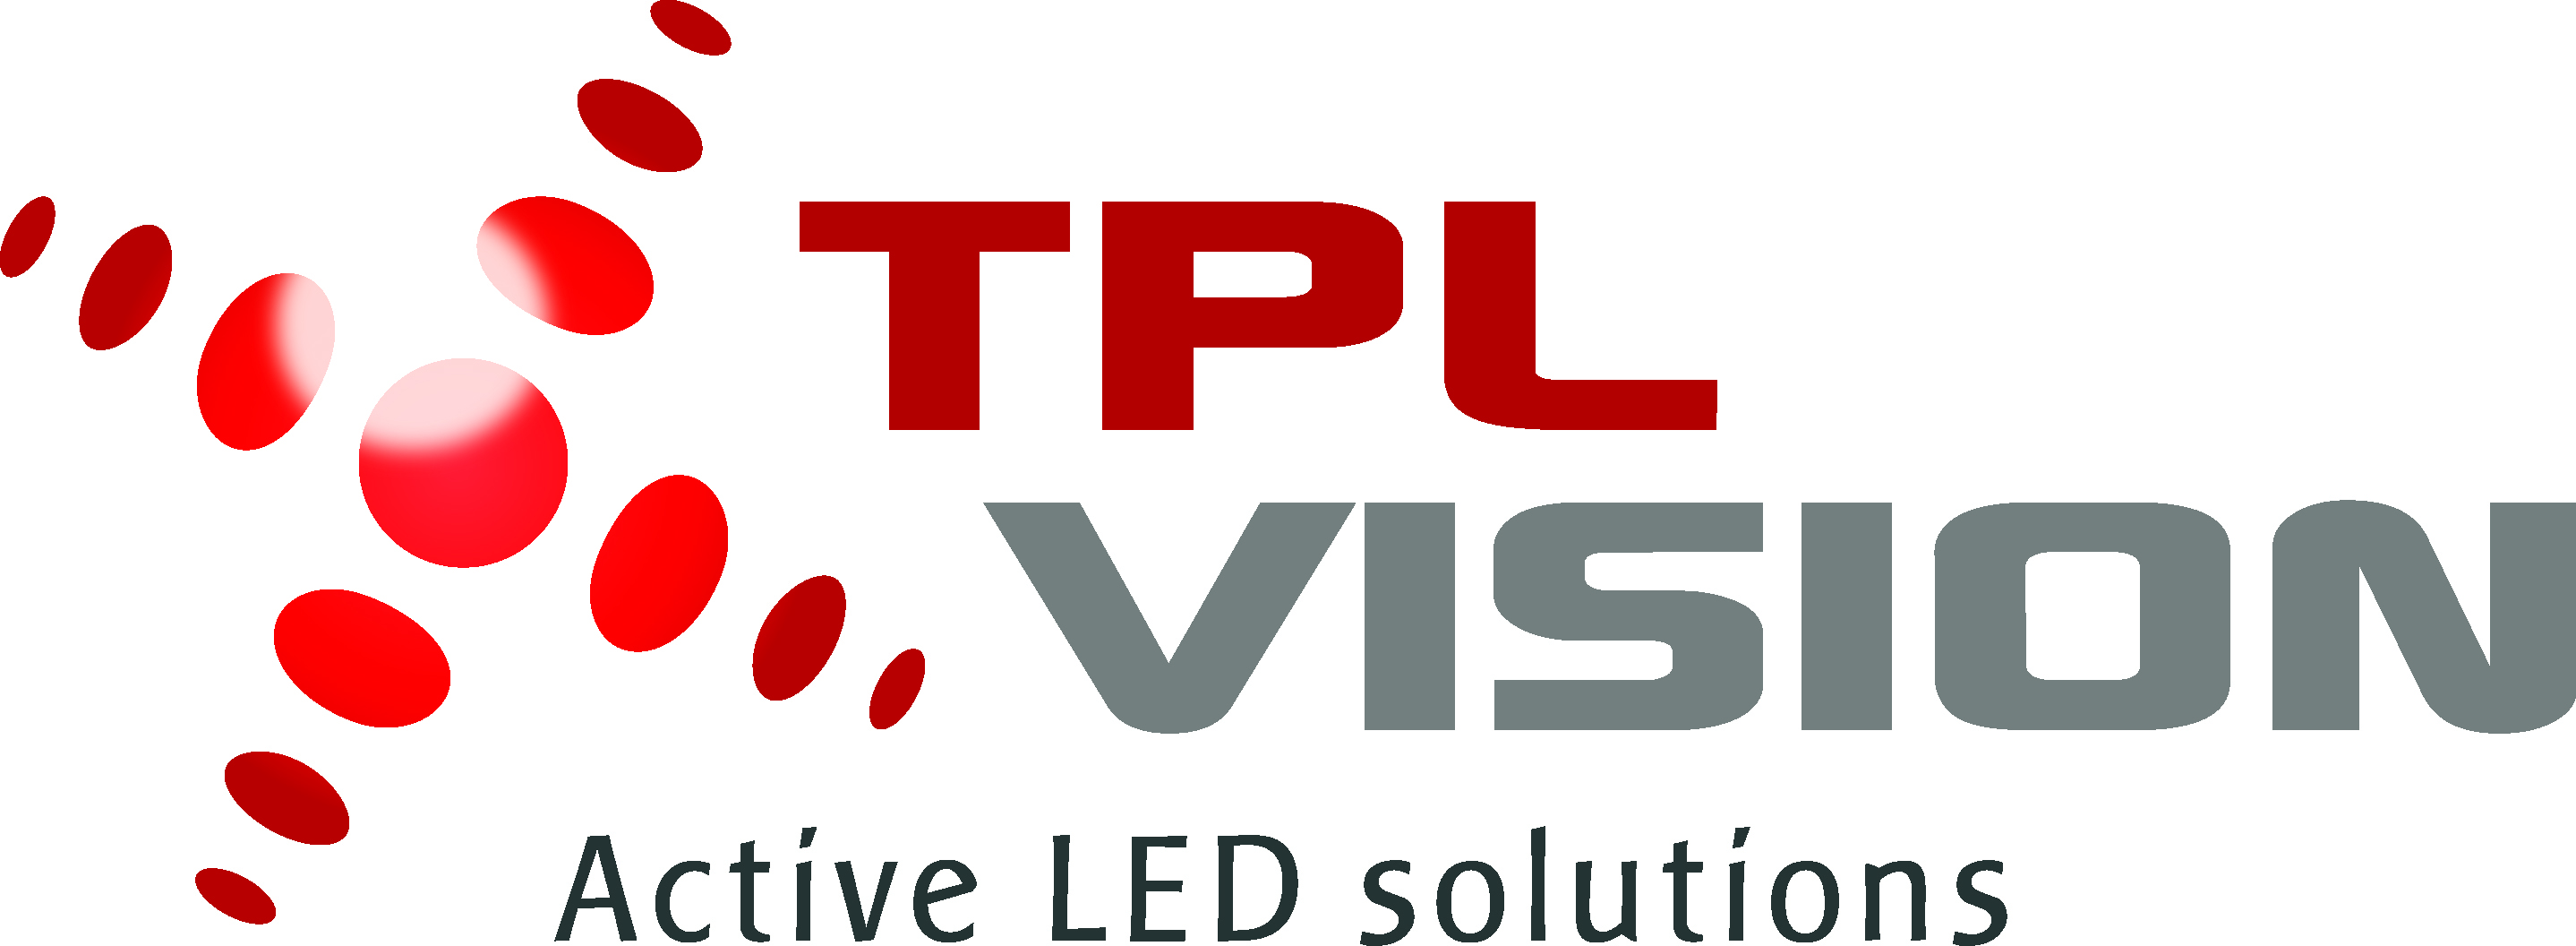 TPL Vision UK Ltd